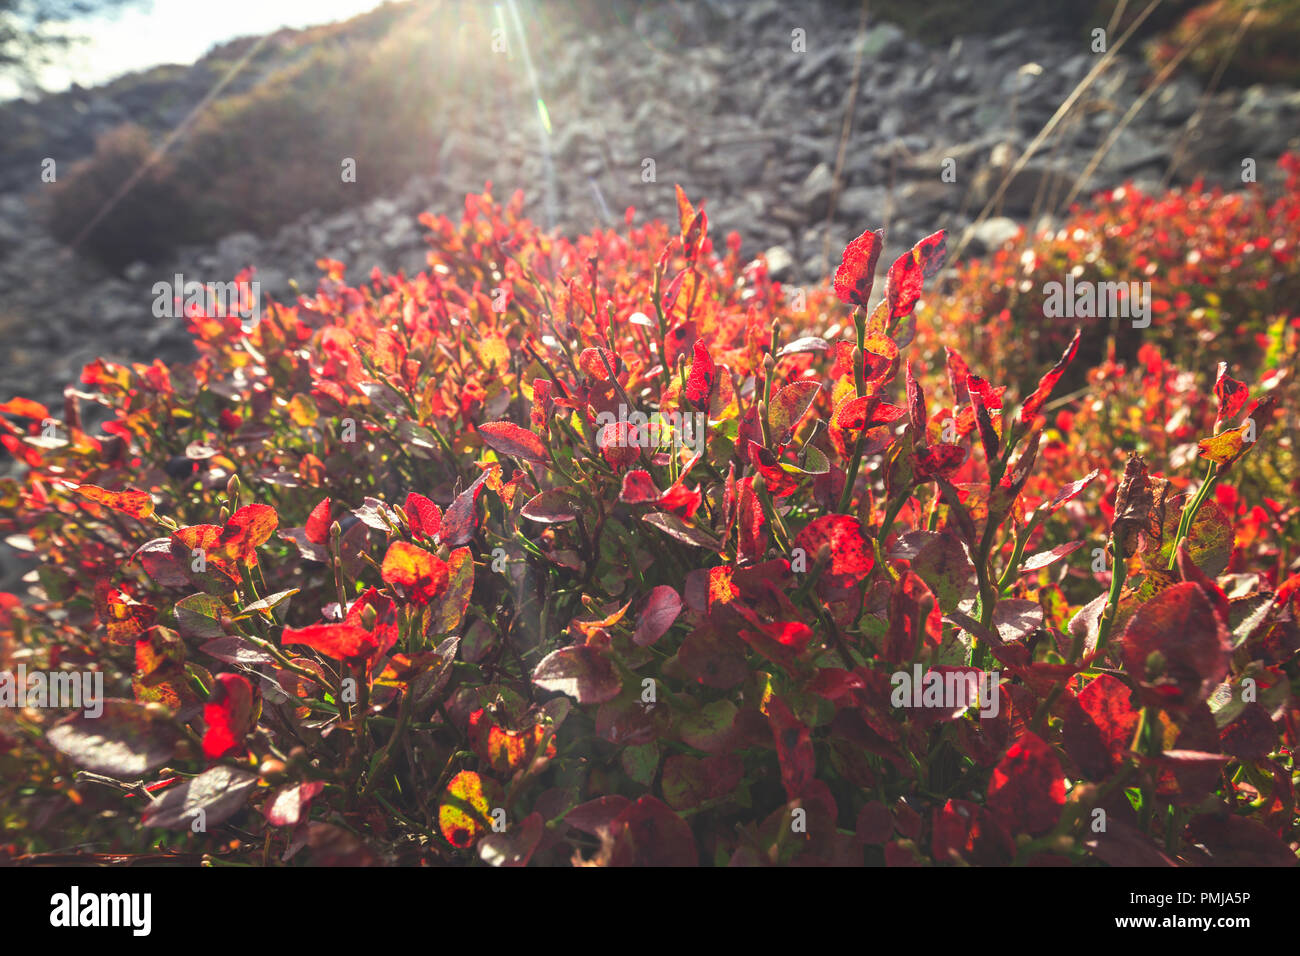 Vivid red leaves of wild blueberry bush. Scenic upland meadow in Stiperstones, Shropshire, United Kingdom - Stock Image